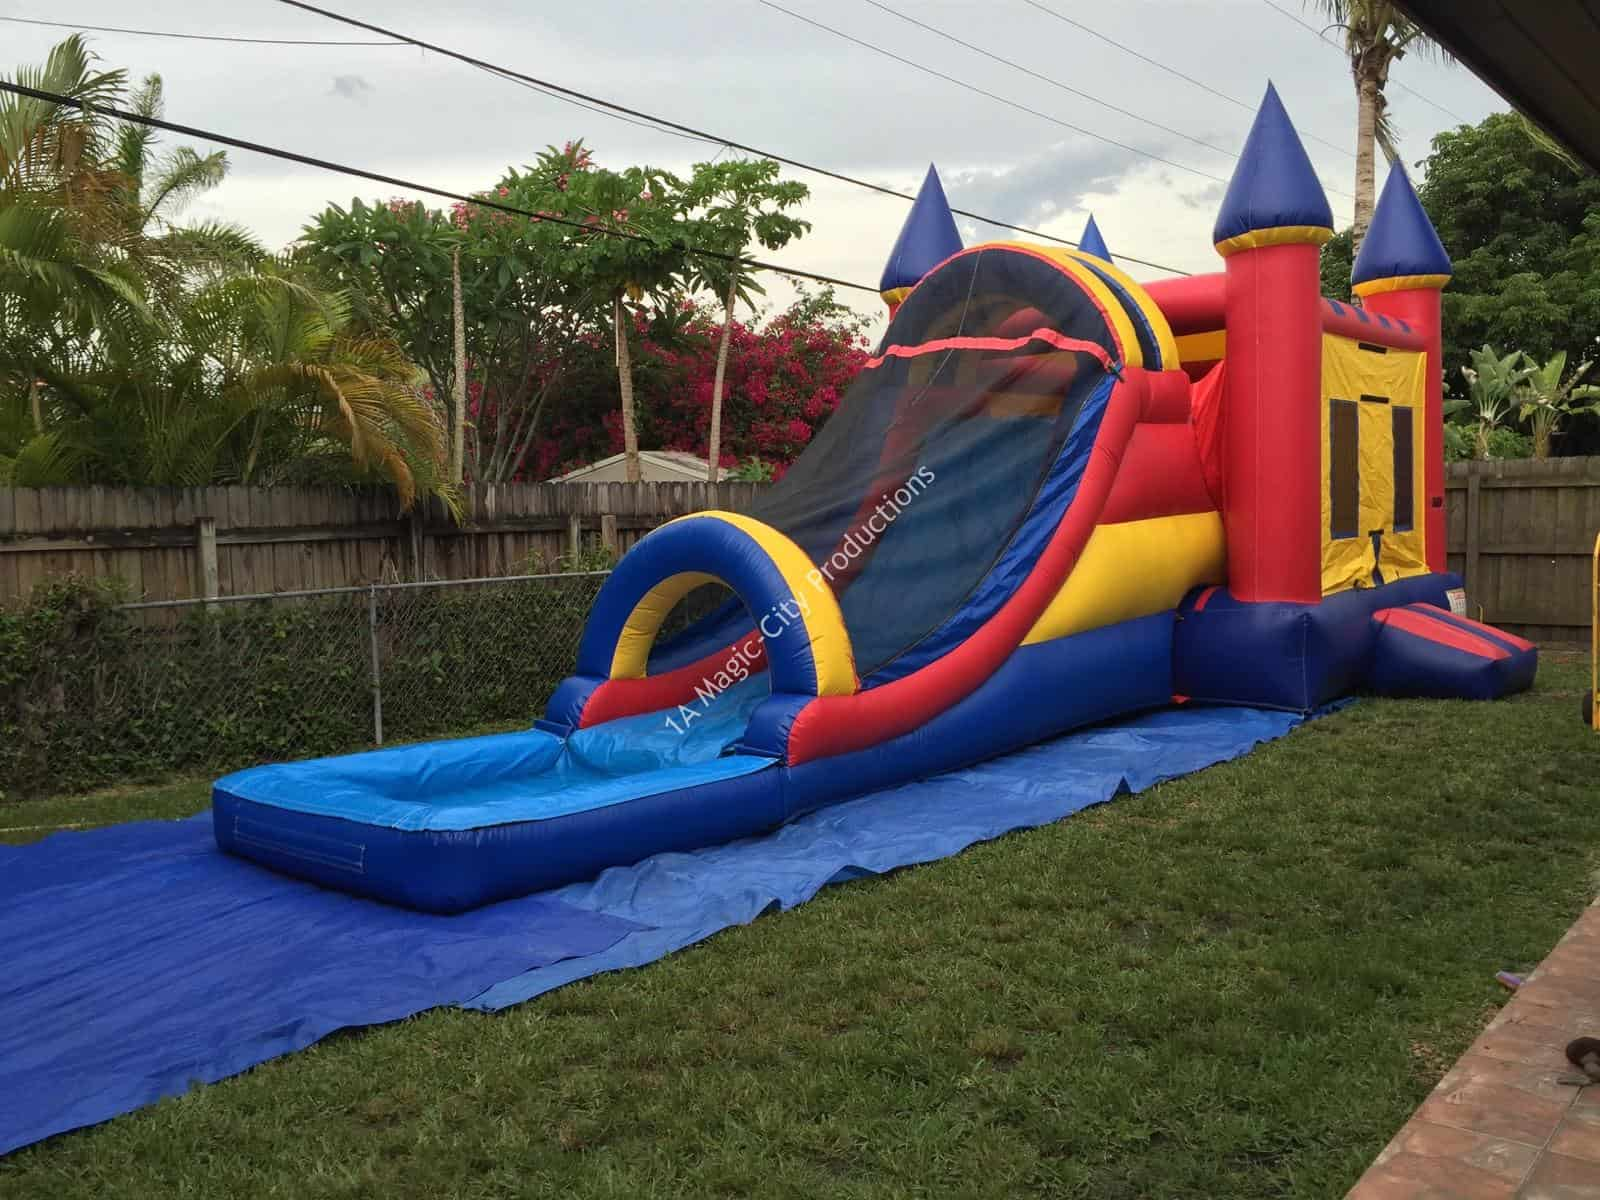 Bouncers & Slides Miami FL 1